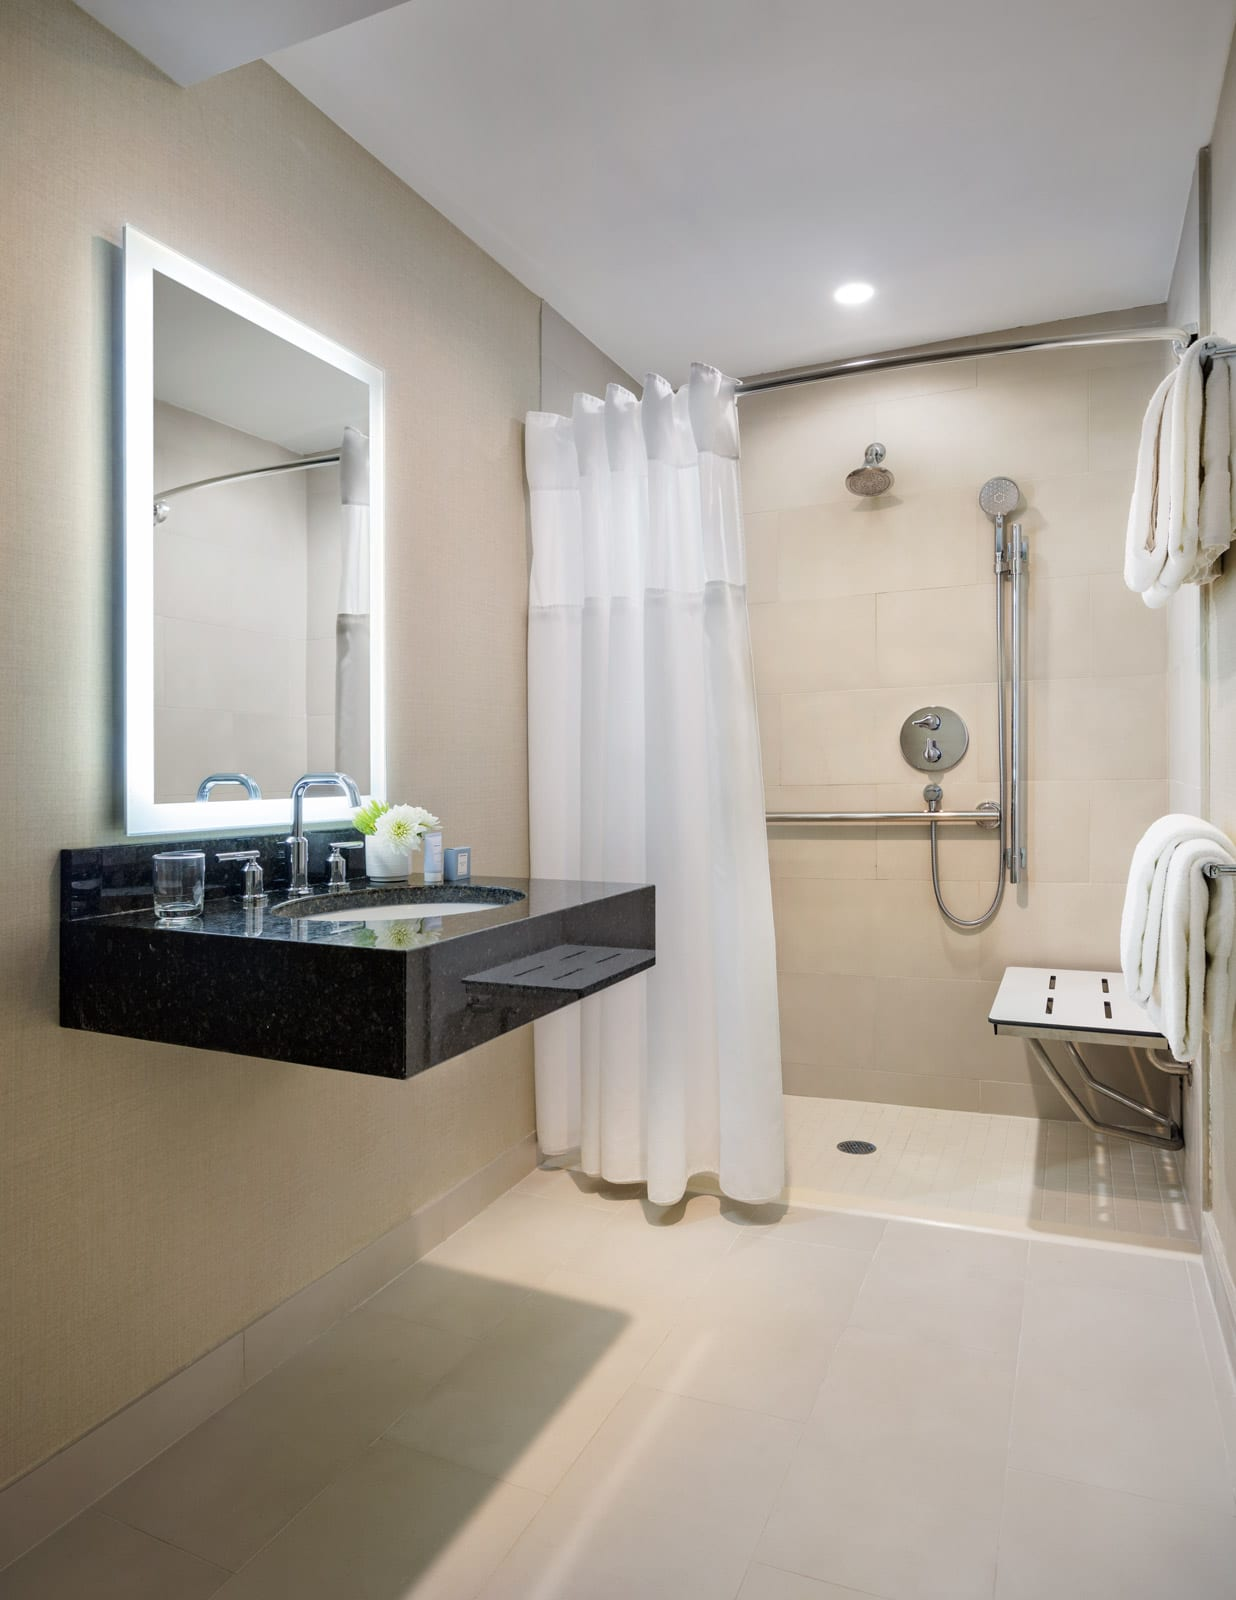 Shelburne Hotel & Suites Accessible Bathroom